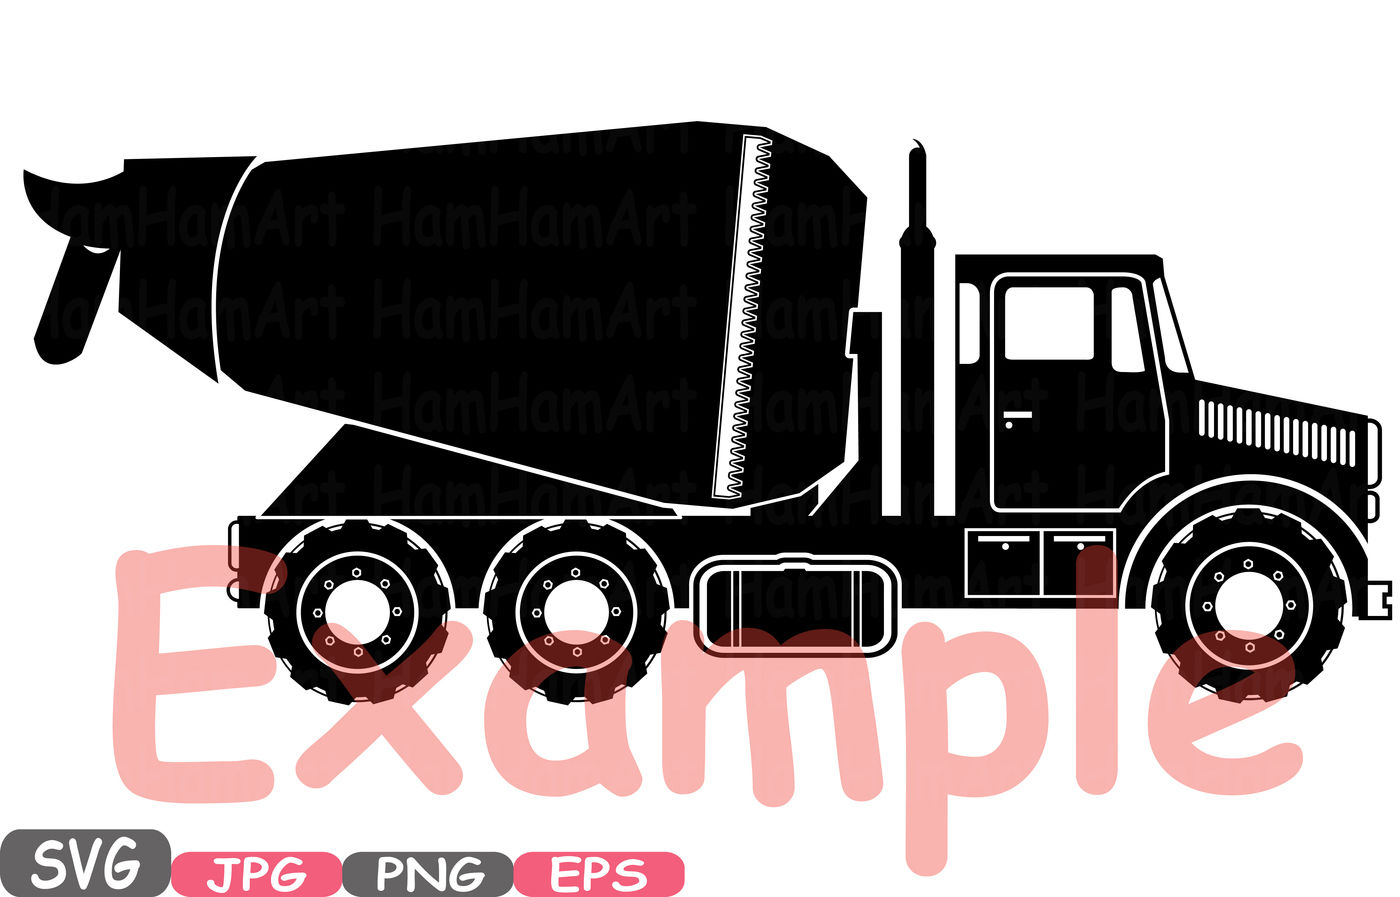 Construction Machines Silhouette Svg File Cutting Files Toy Toys